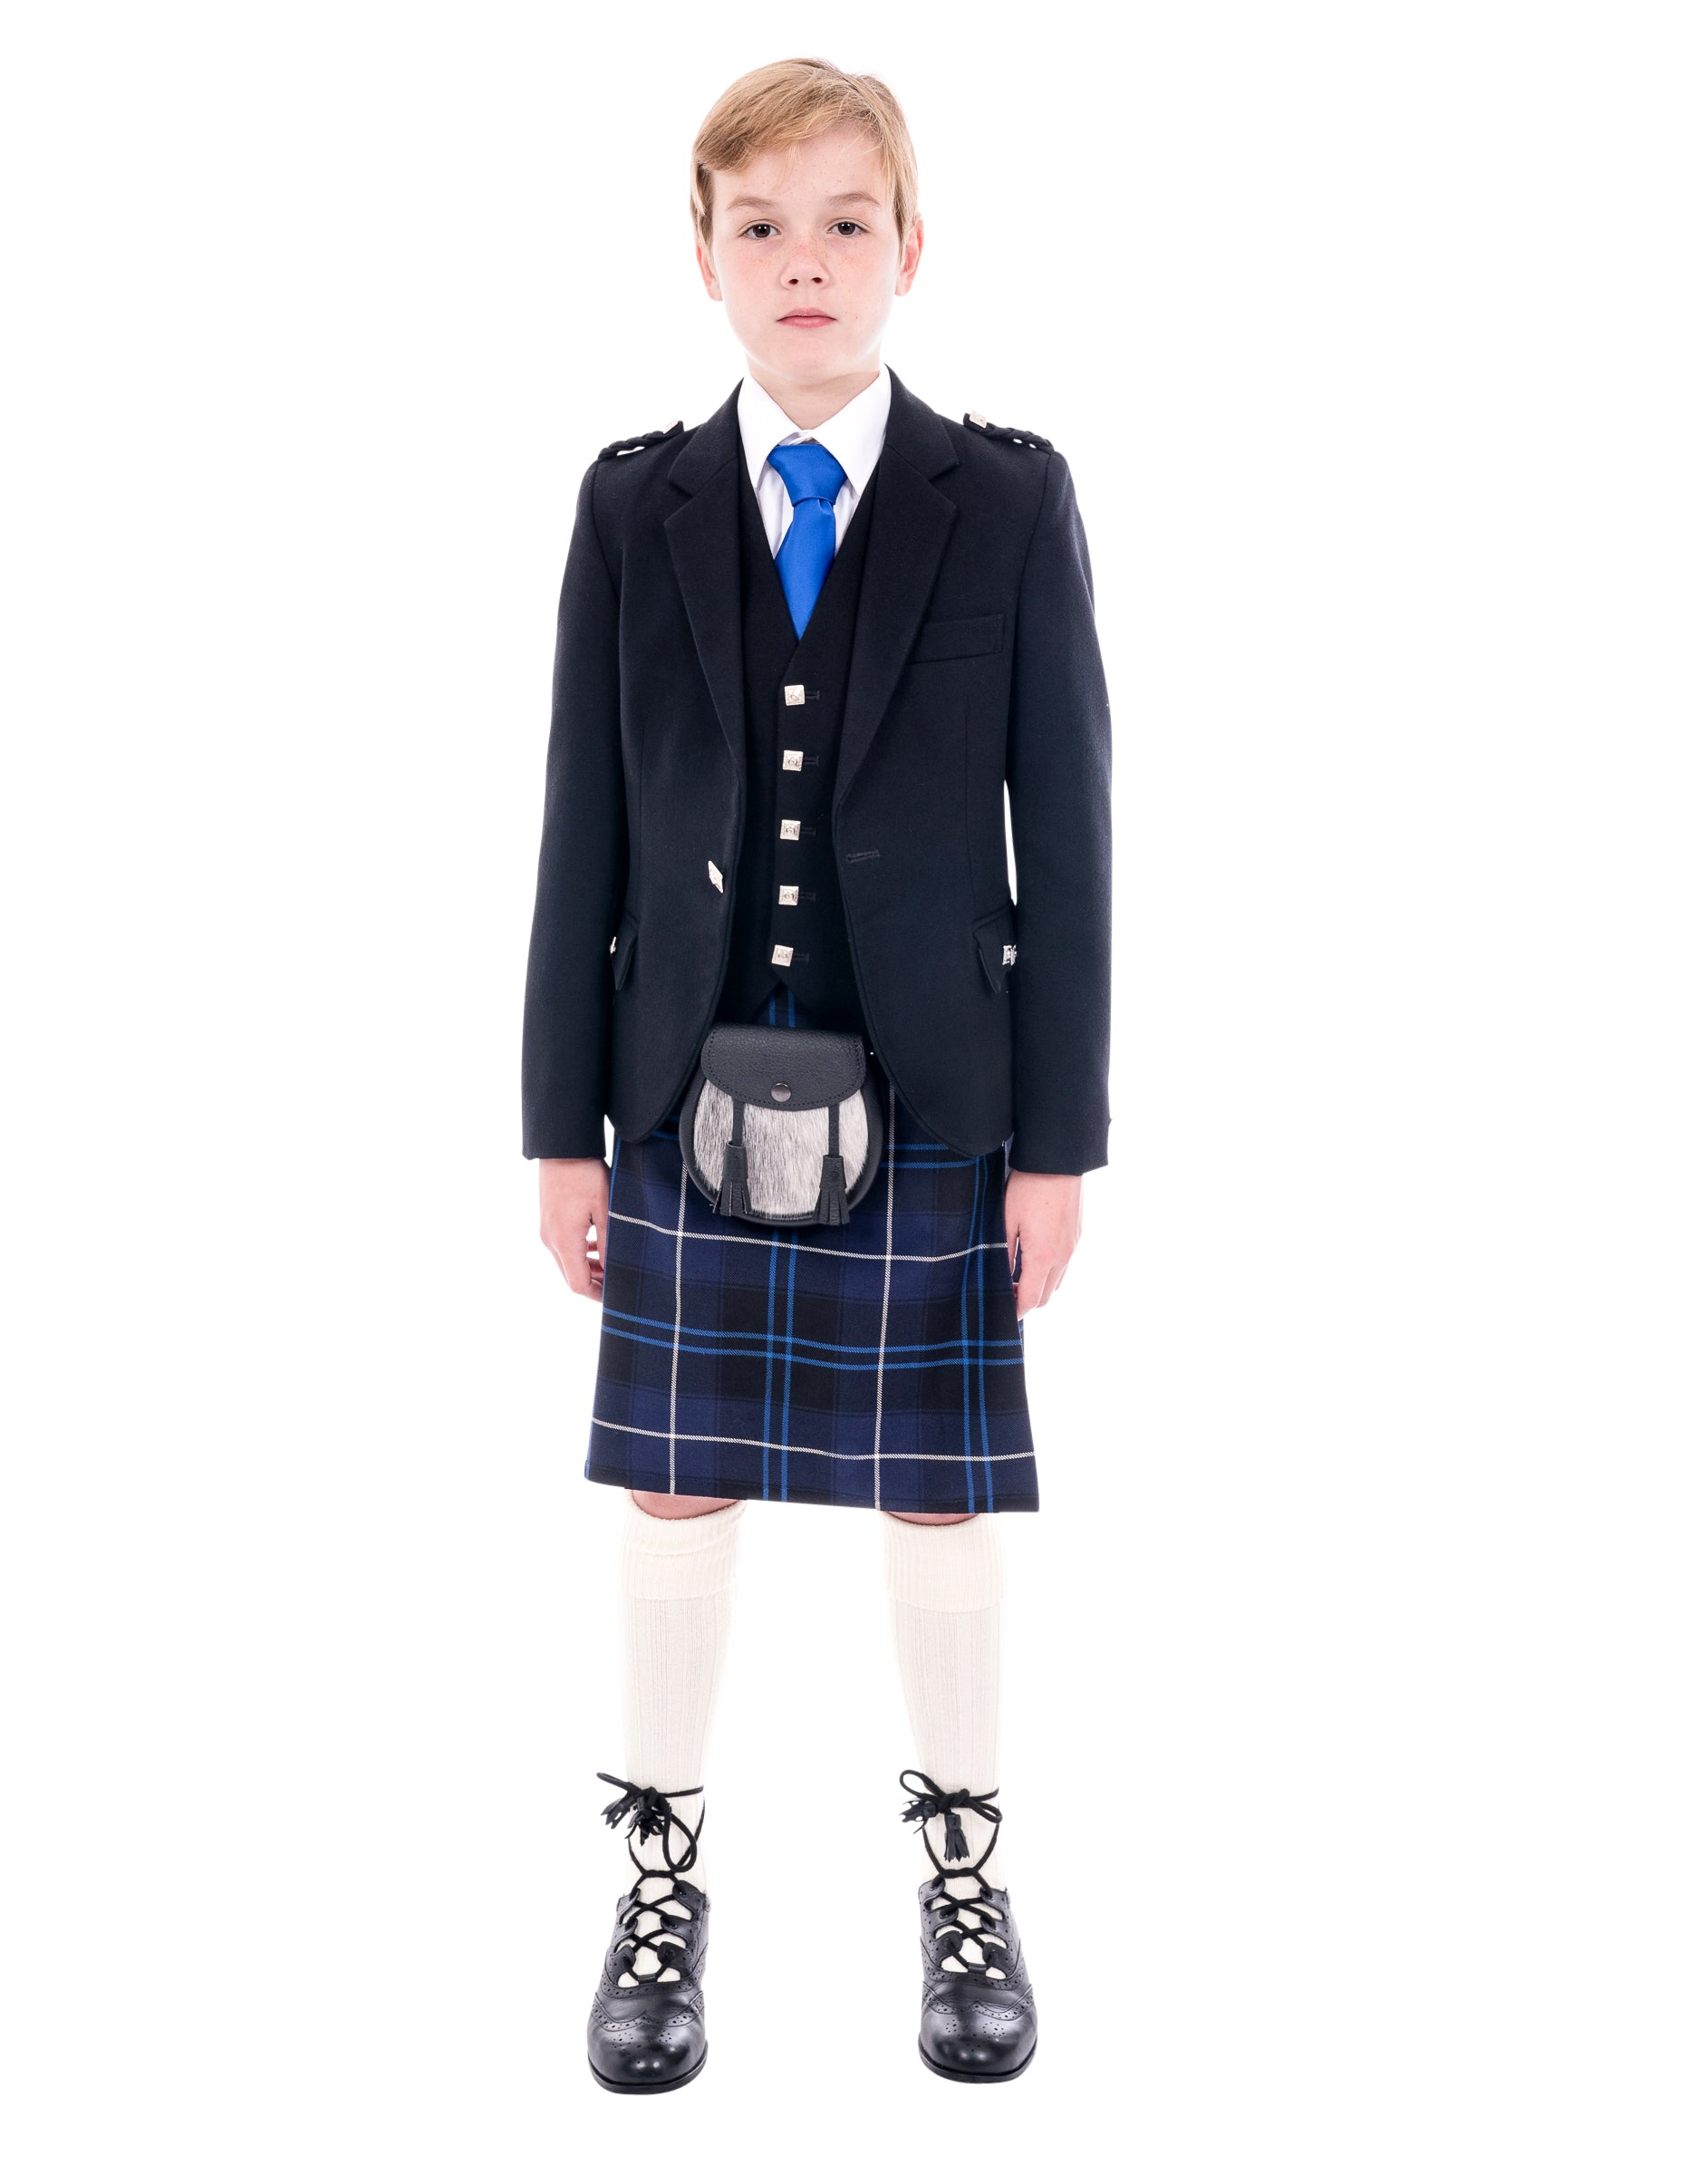 Boys Black Argyll kilt hire outfit with Patriot tartan kilt. Available to hire from Anderson Kilts Dumfries